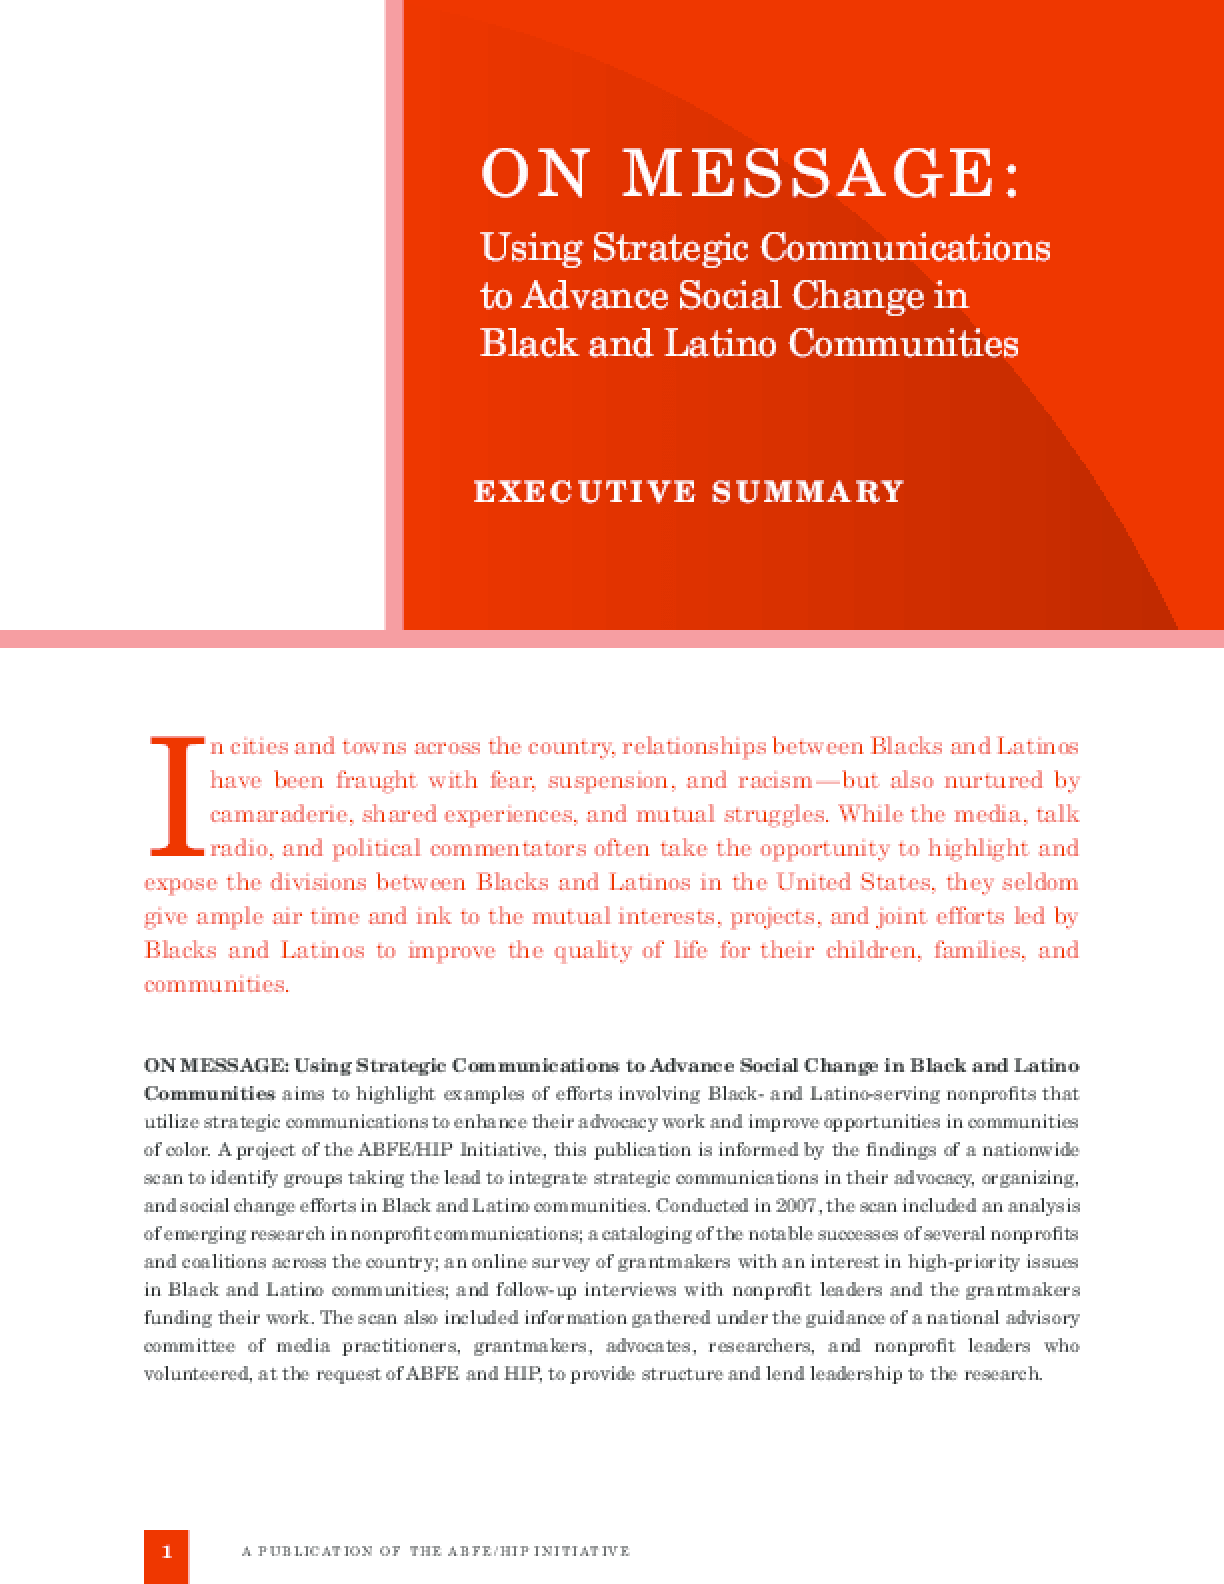 On Message: Using Strategic Communications to Advance Social Change in Black and Latino Communities, Executive Summary